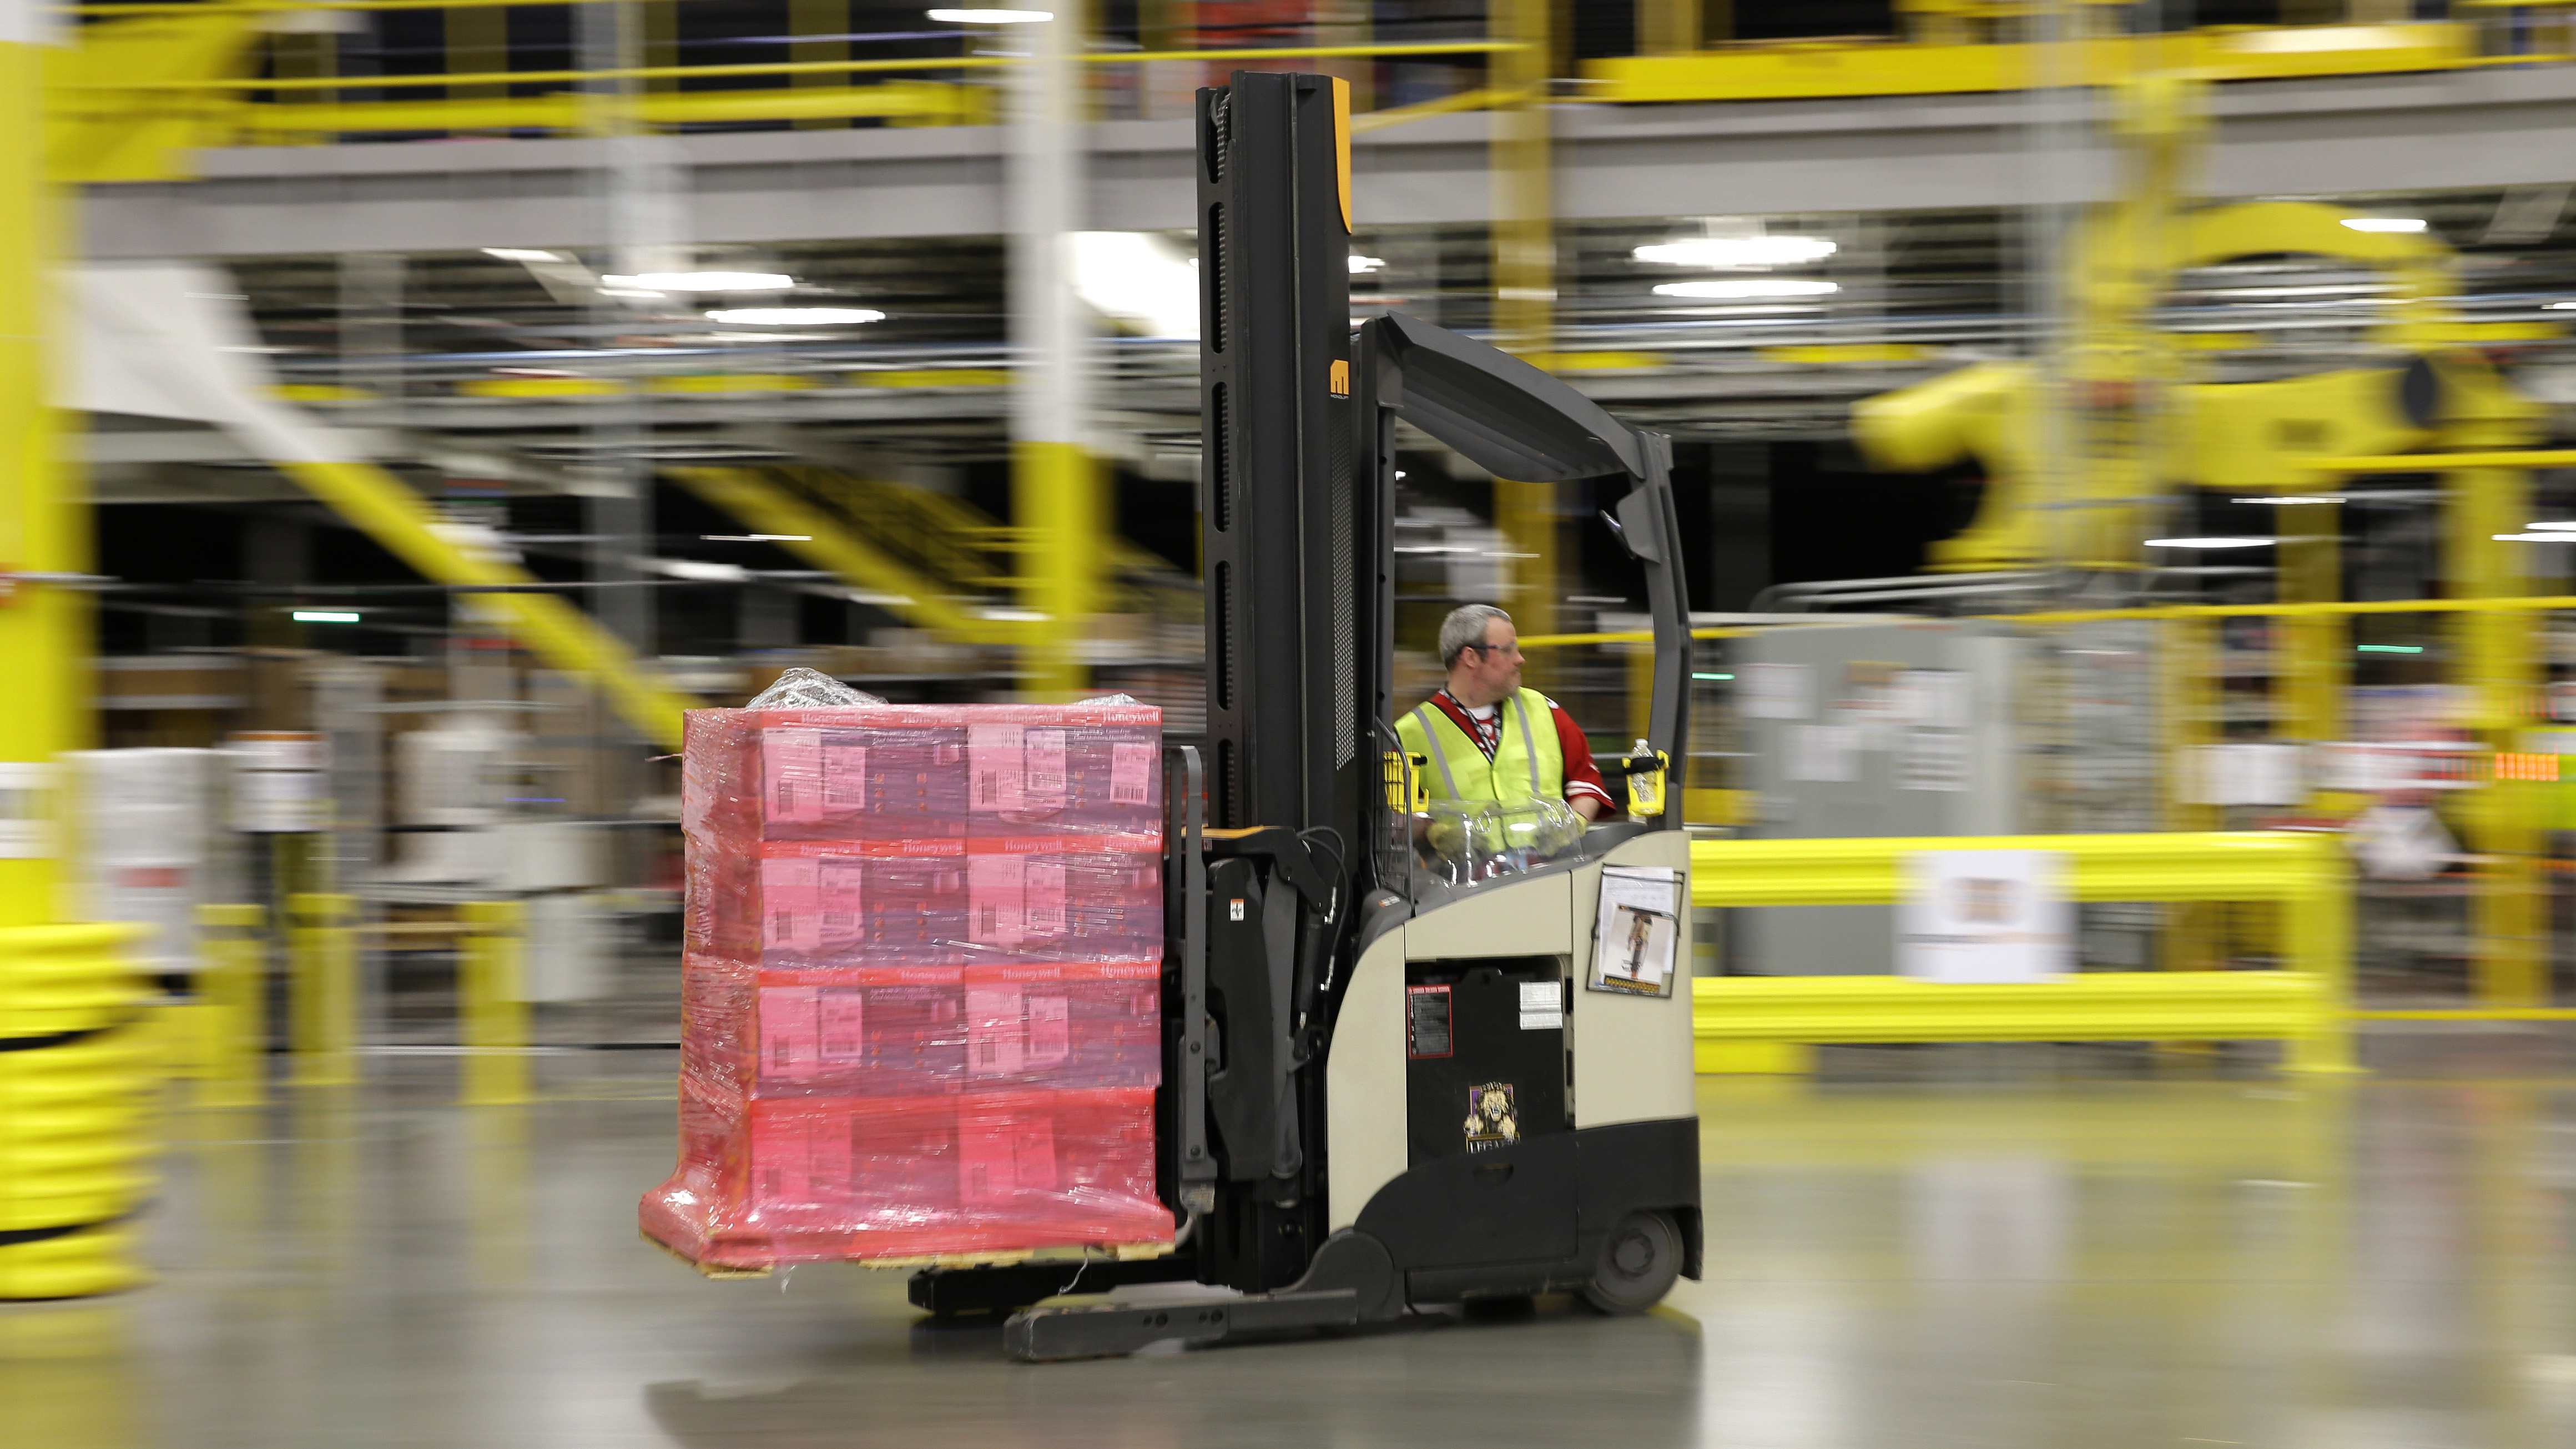 FILE - in this Feb. 13, 2015 file photo, a forklift operator moves a pallet of goods at a Amazon.com fulfillment center in DuPont, Wash. An Illinois corporate tax credit program suspended earlier this summer amid a state budget crisis has since been offered to Amazon because of a previous commitment to the online retailer. Amazon announced its plans in August for a Joliet warehouse that will create 1,000 full-time jobs when it opens. The 500,000-square-foot fulfillment center is its first in Illinois. (AP Photo/Ted S. Warren, File)